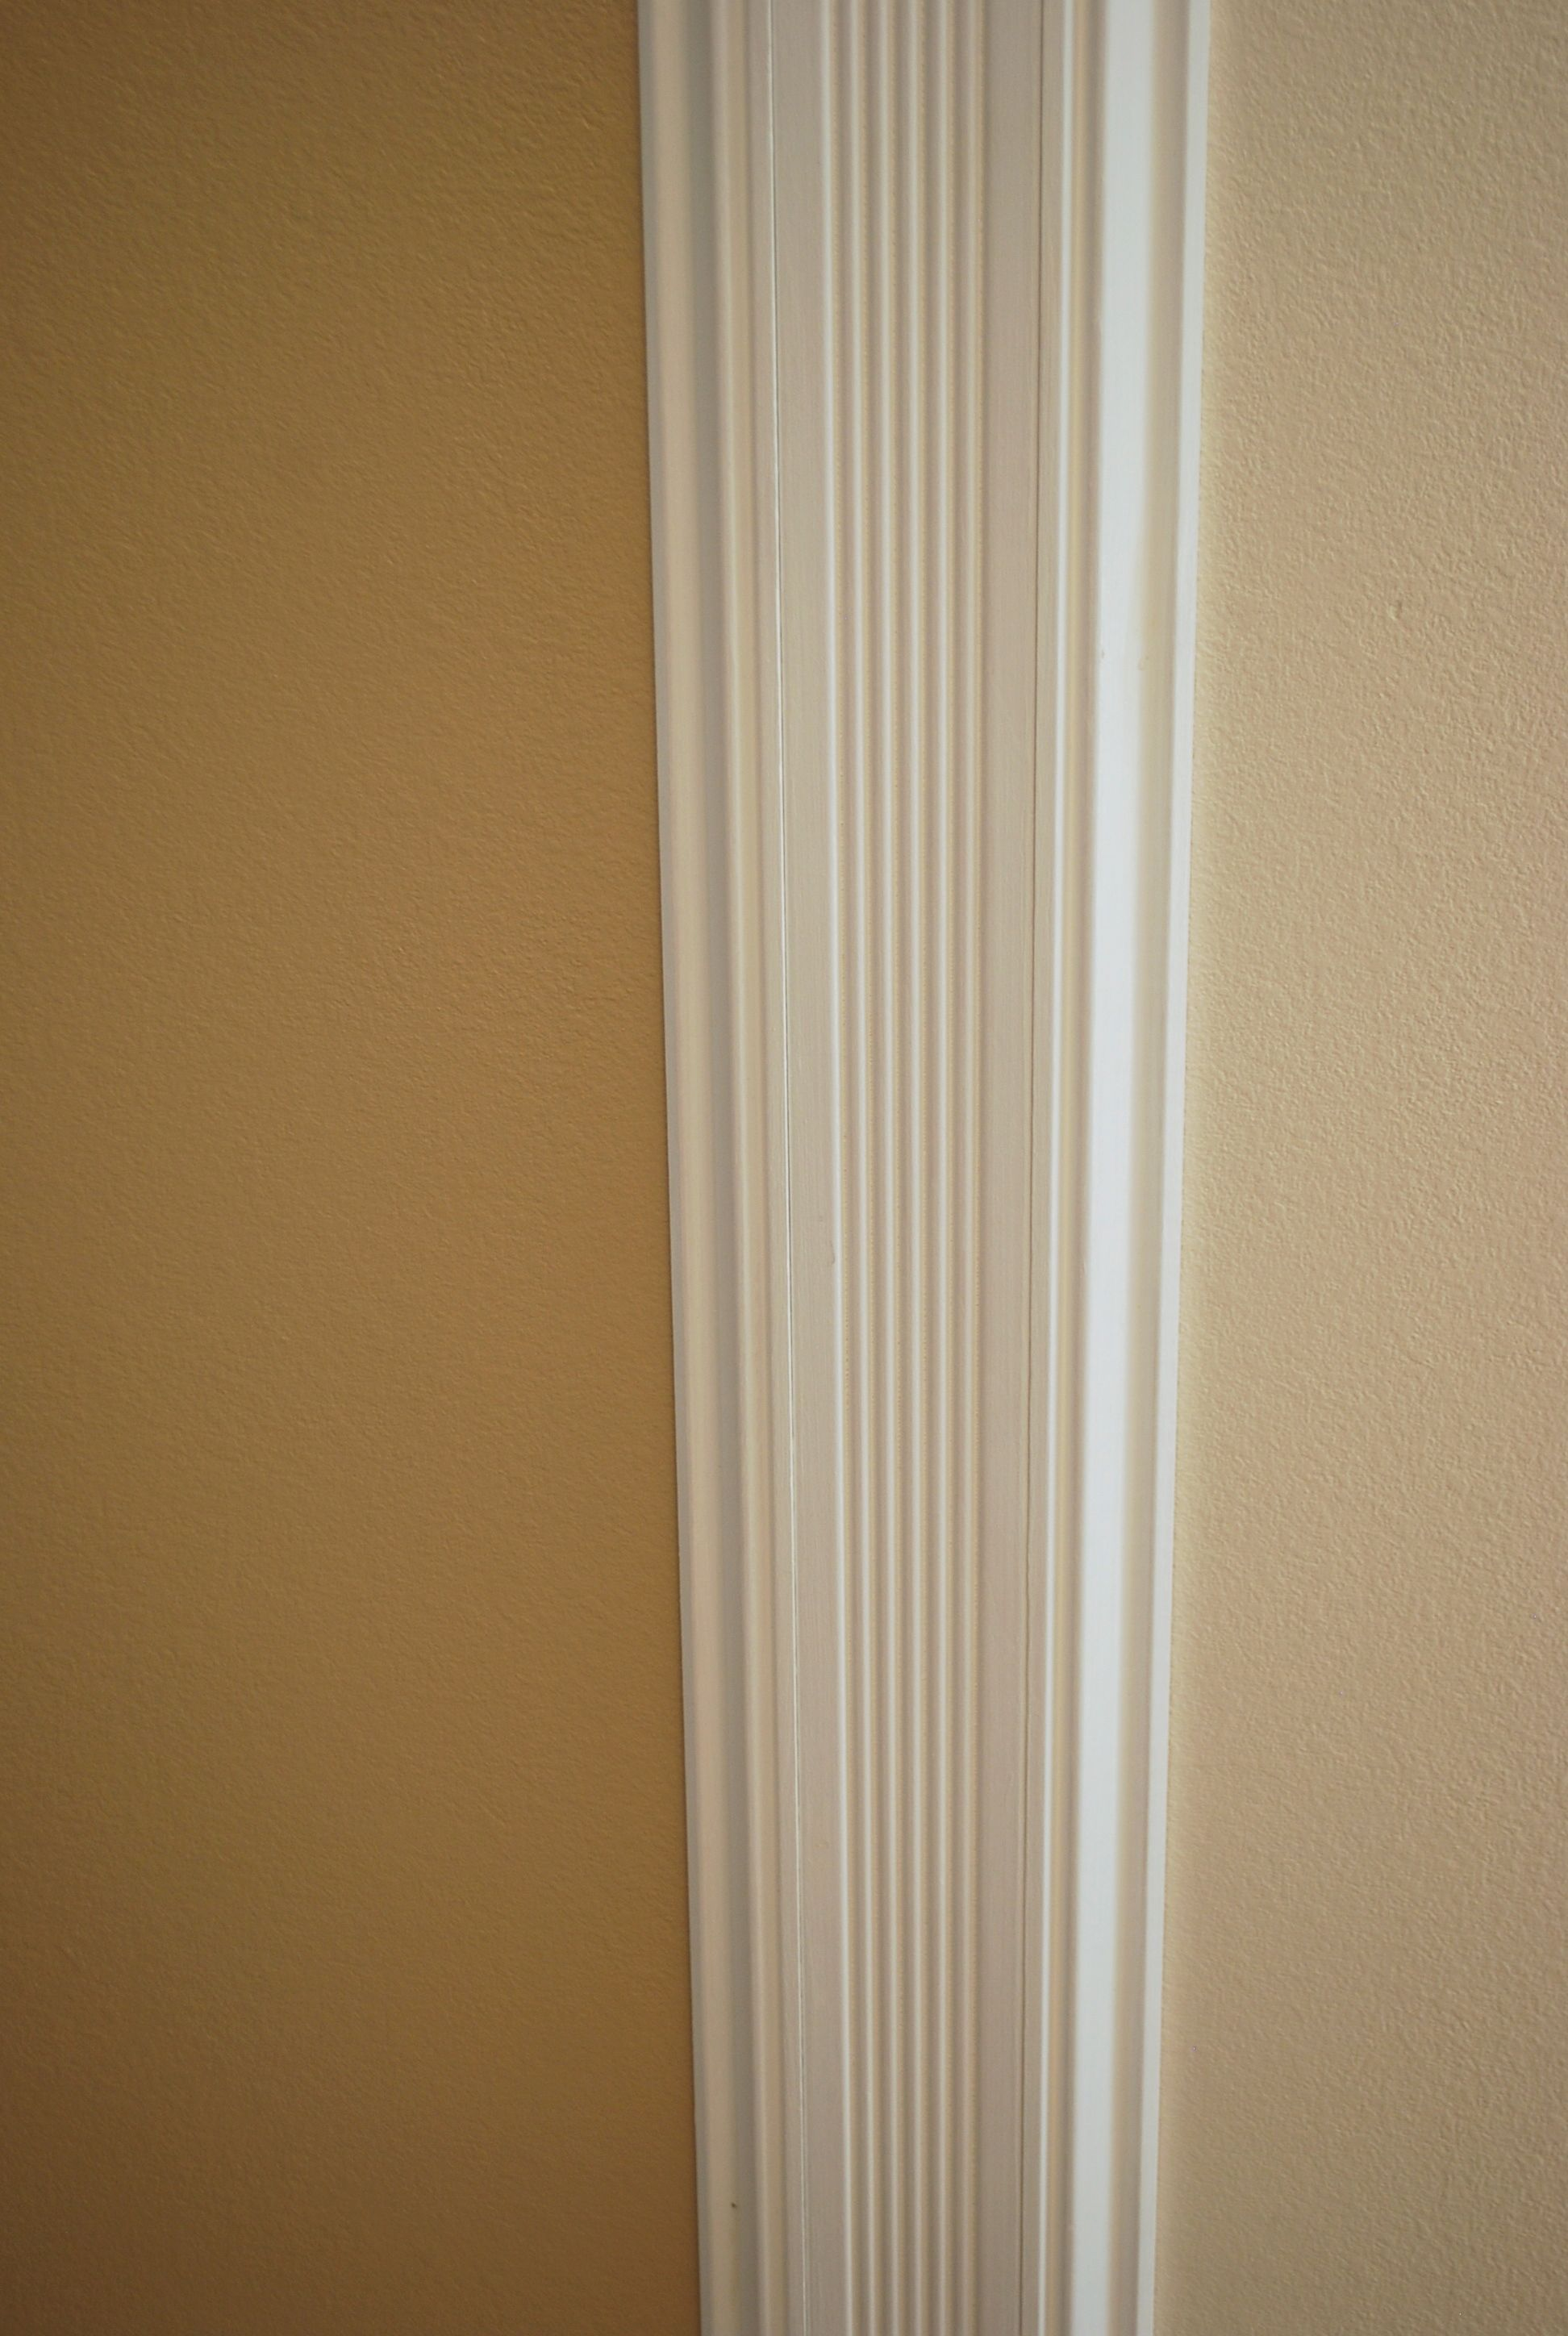 How to hang wood trim to separate rooms with different ...